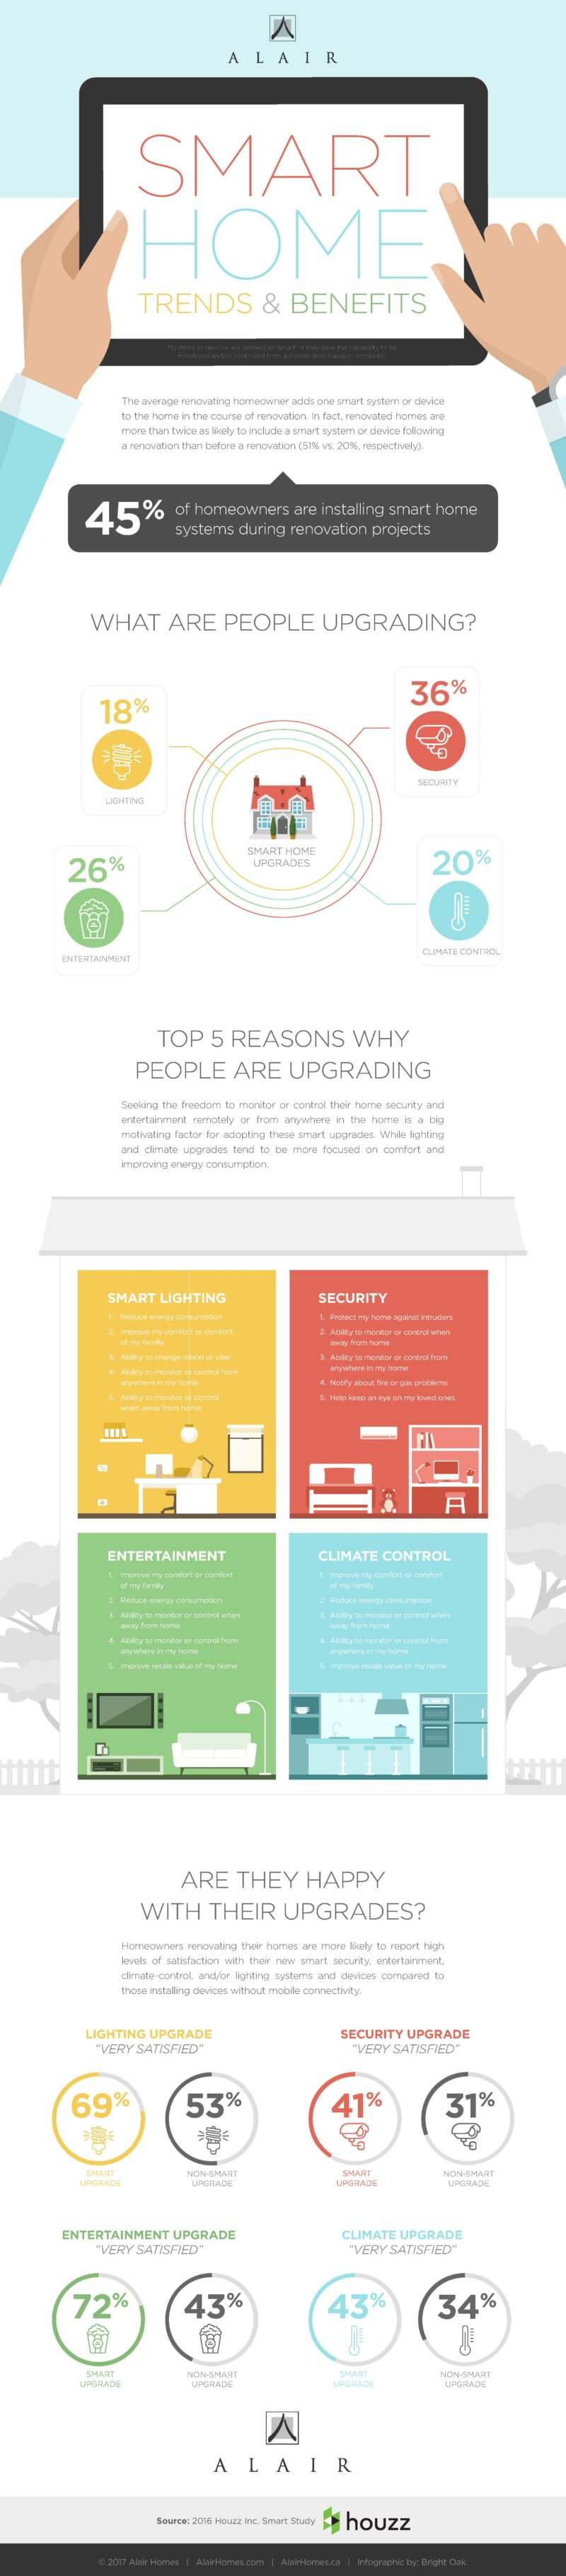 AlairHomes-Houzz-Smart-Home-Infographic